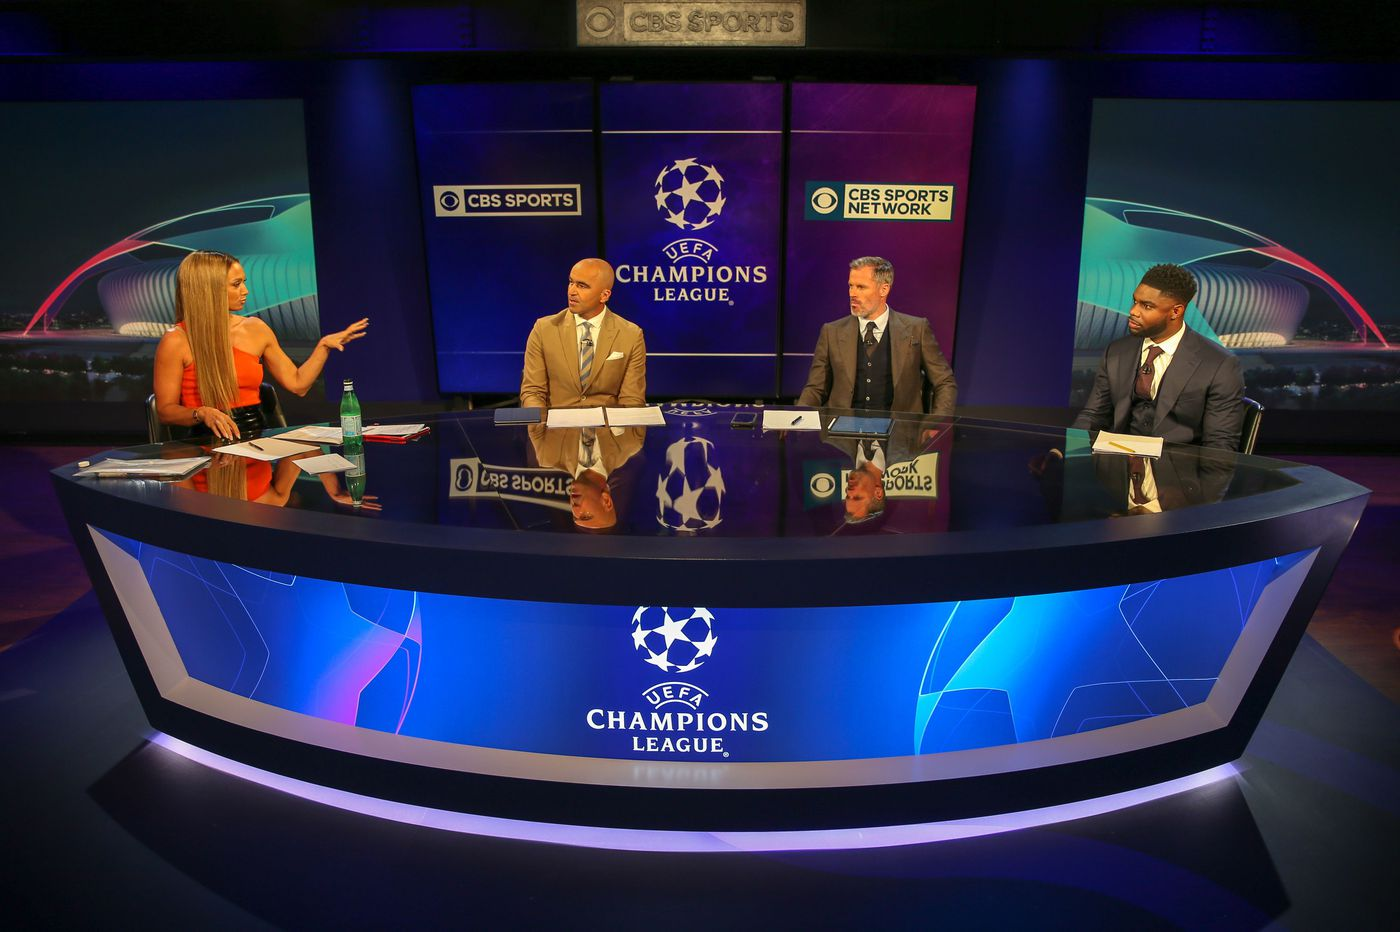 CBS' Champions League producer lives a soccer dream, and wins fans' praise for his broadcasts